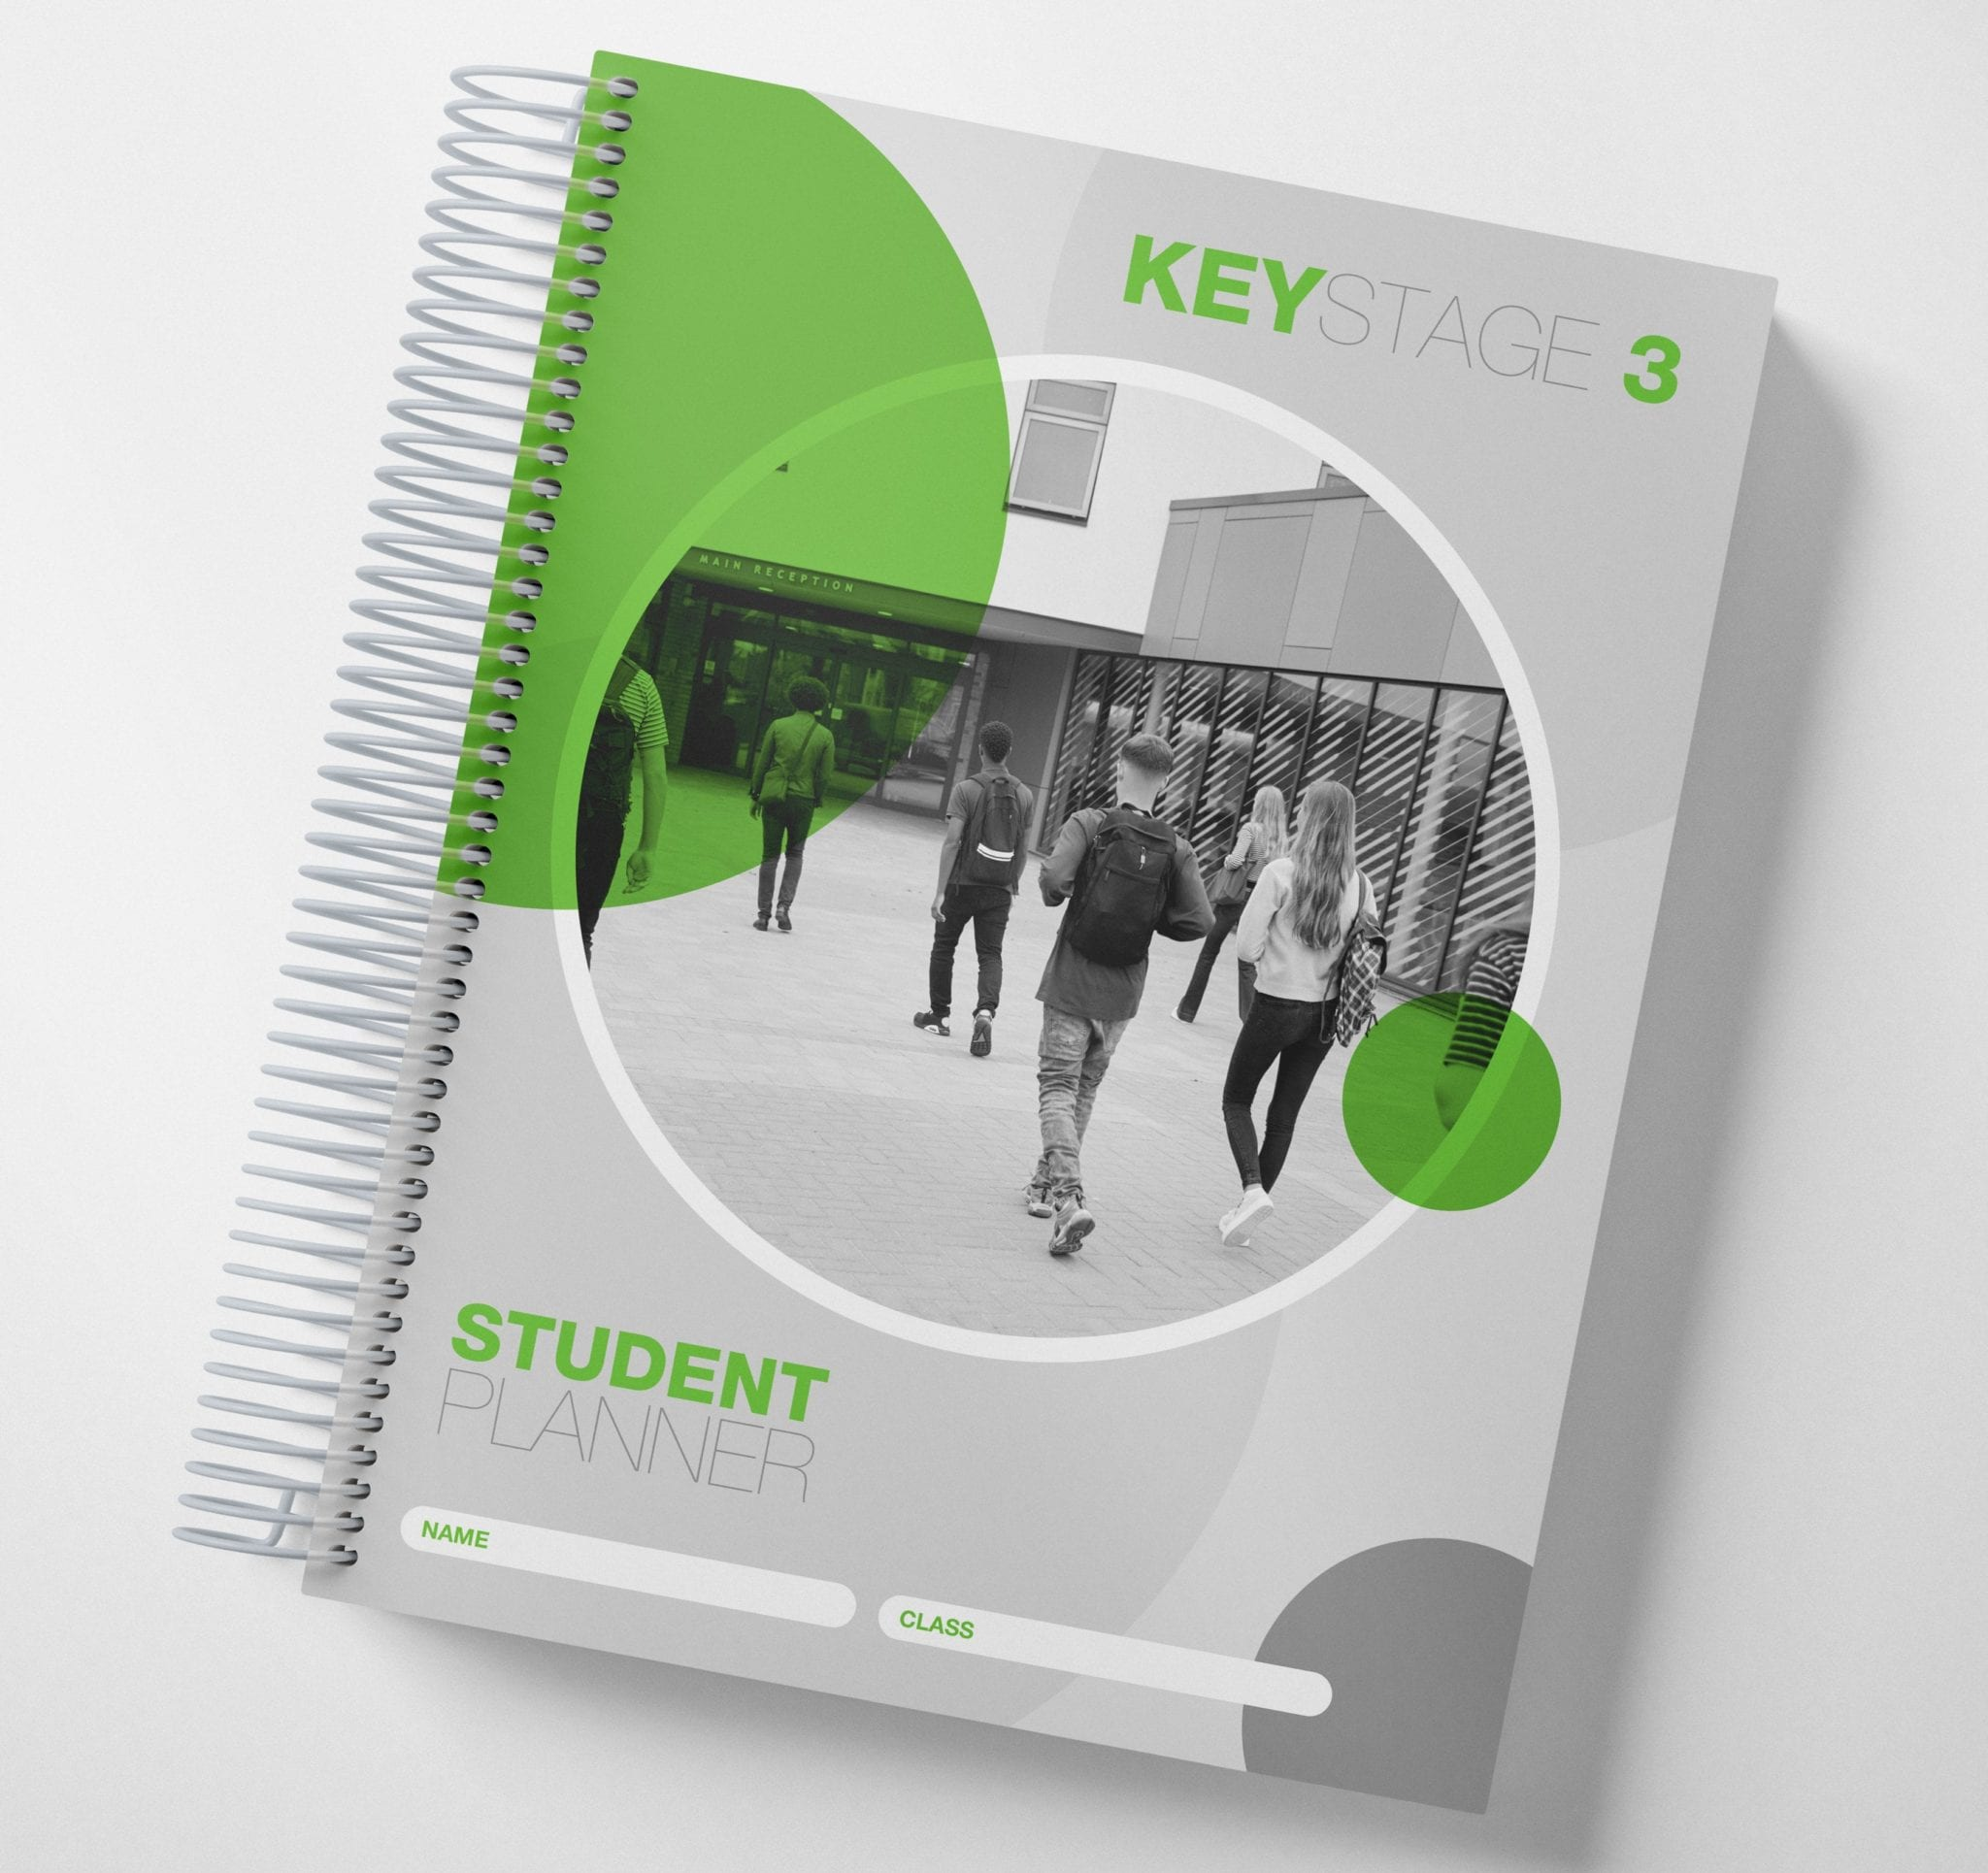 Student Planner key stage 3